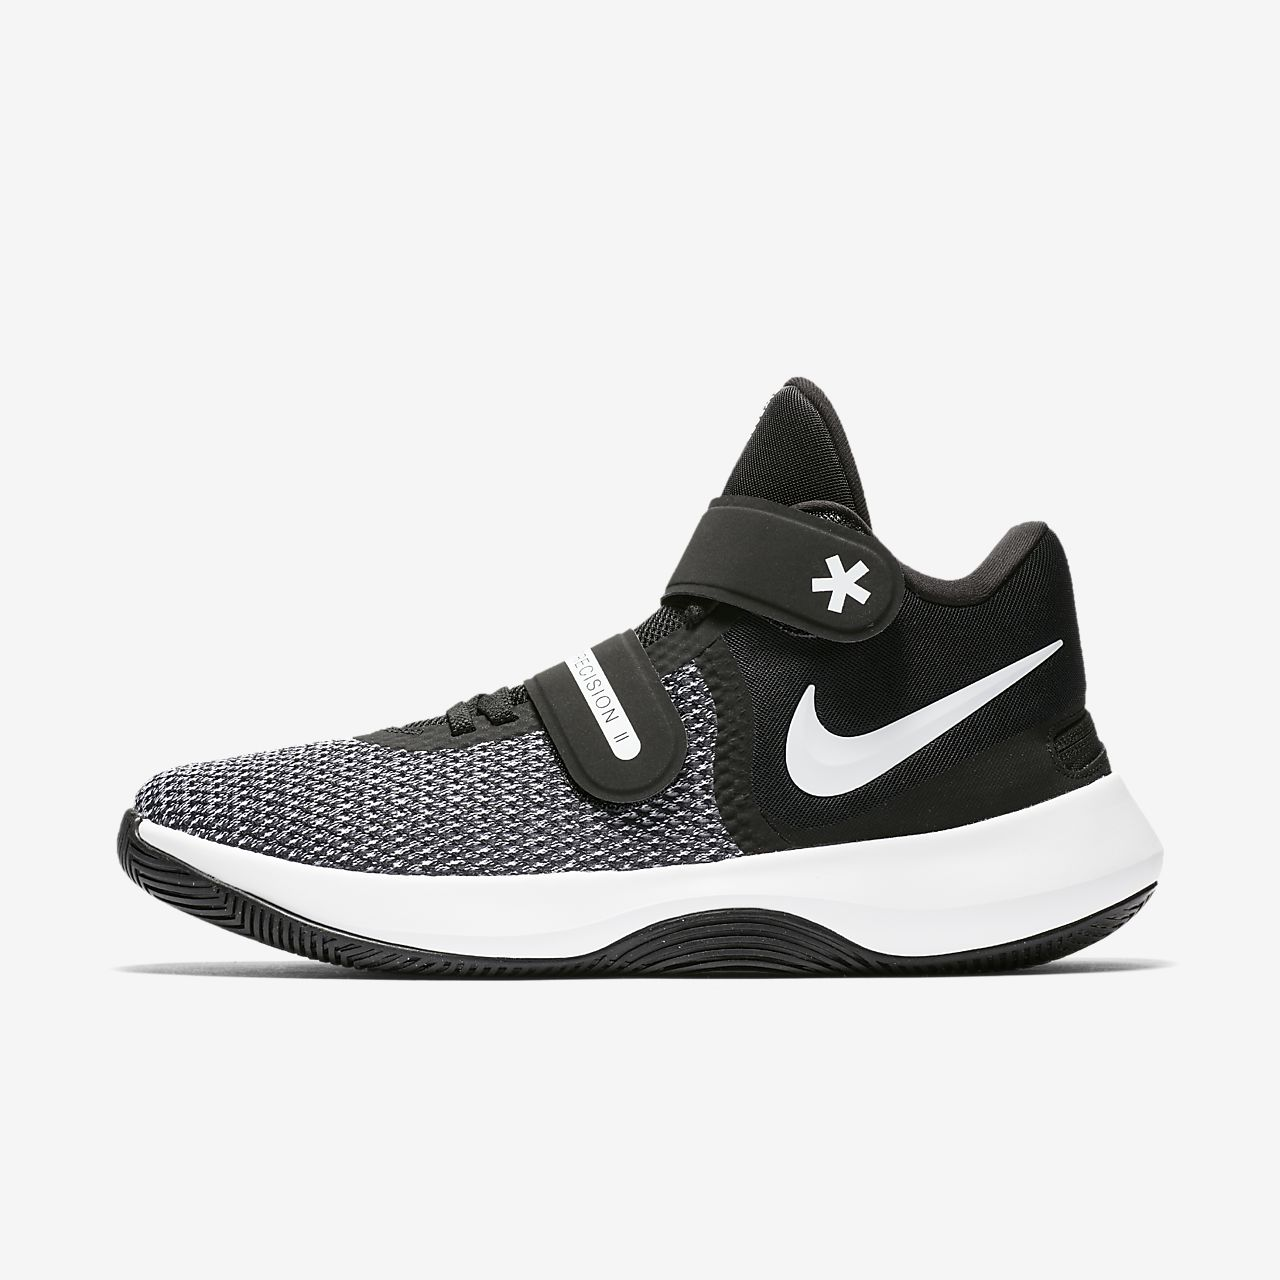 free shipping new buy cheap visa payment Nike Air Precision II Men's ... Basketball Shoes good selling cheap online cheap price outlet sale online shop from china 5D4ZNBAOf